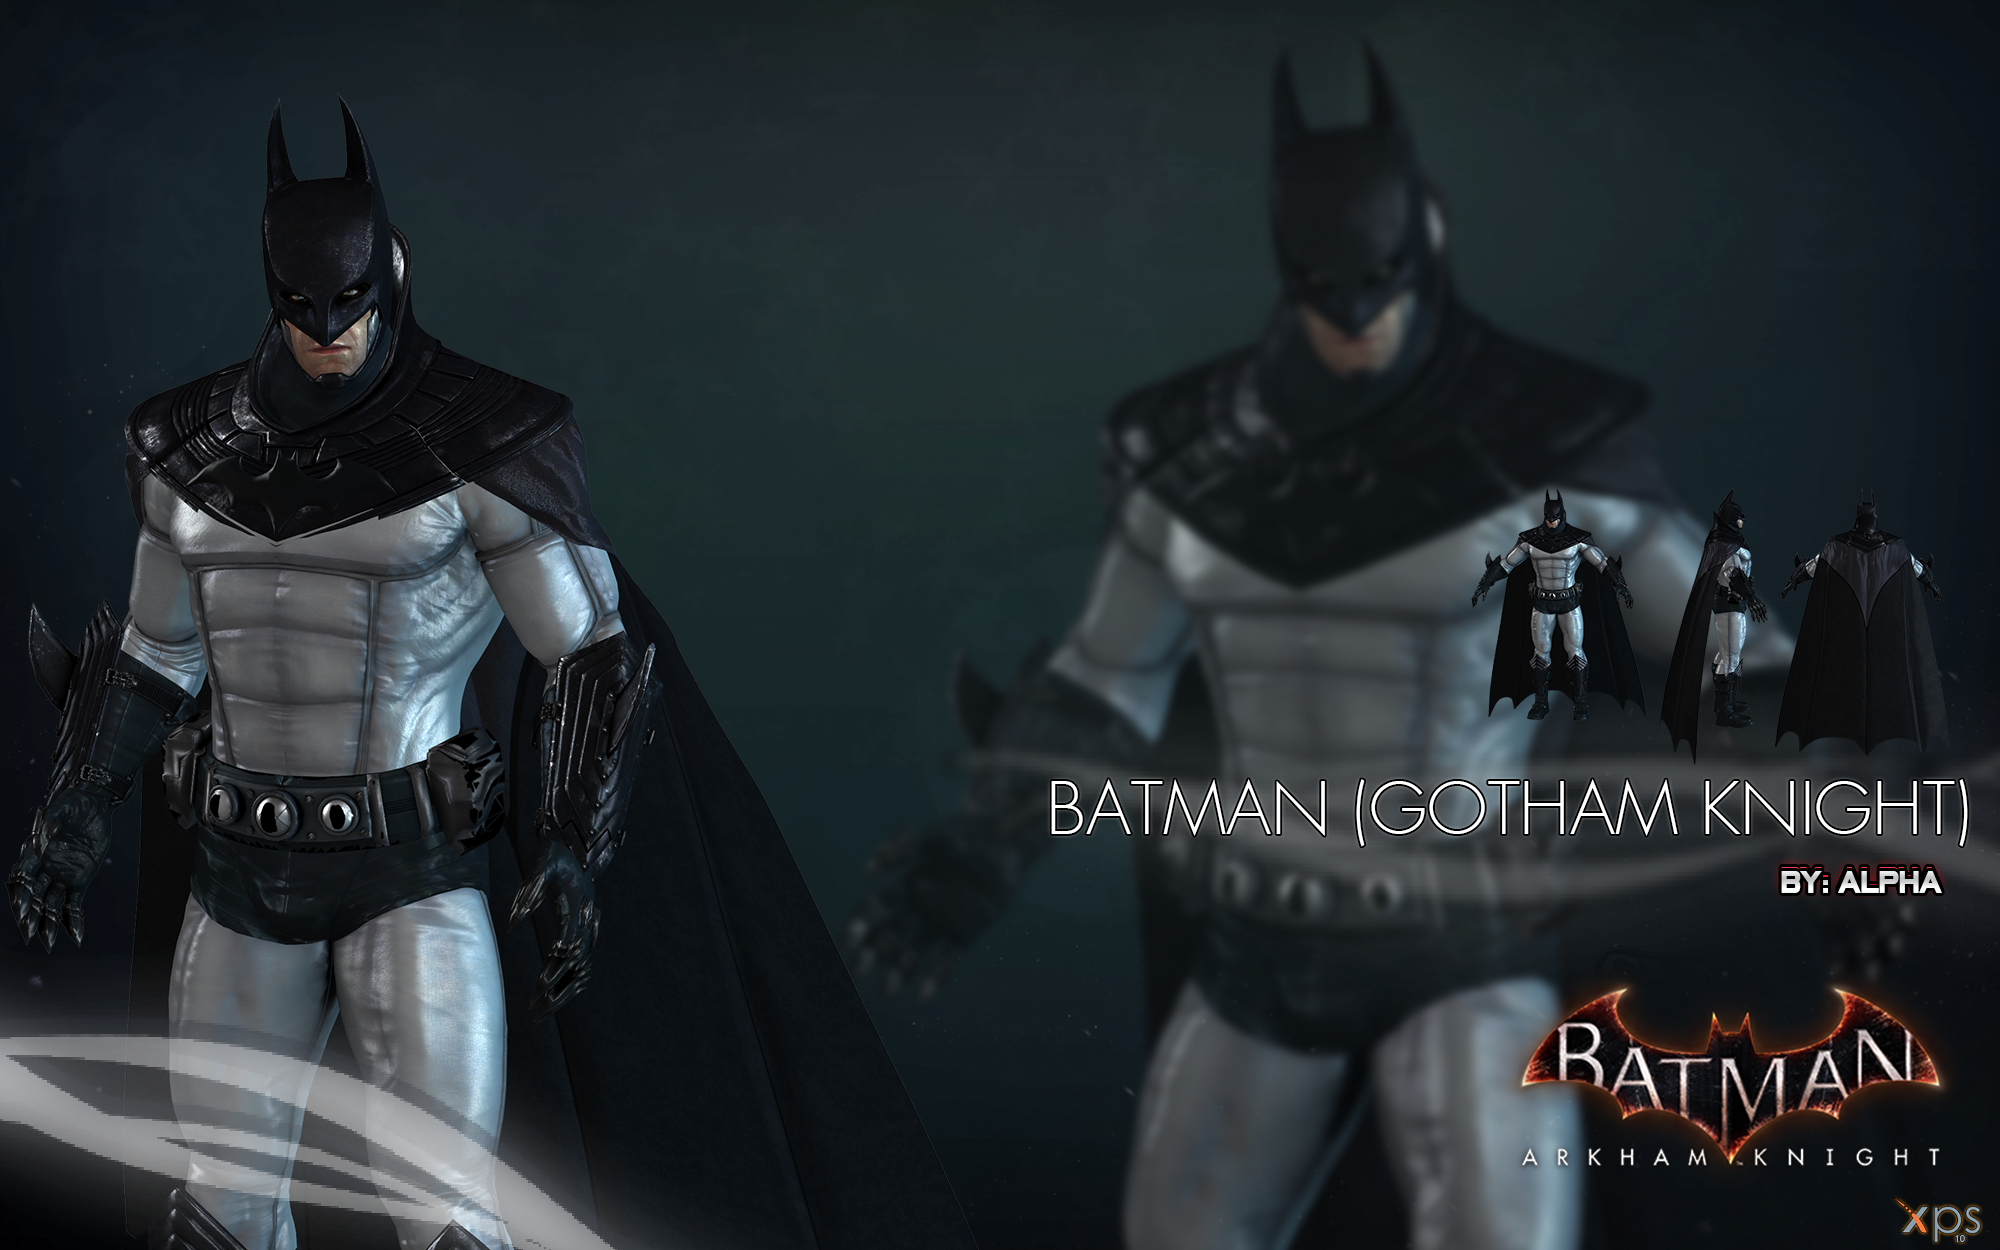 Batman: Gotham Knight Backgrounds, Compatible - PC, Mobile, Gadgets| 2000x1250 px